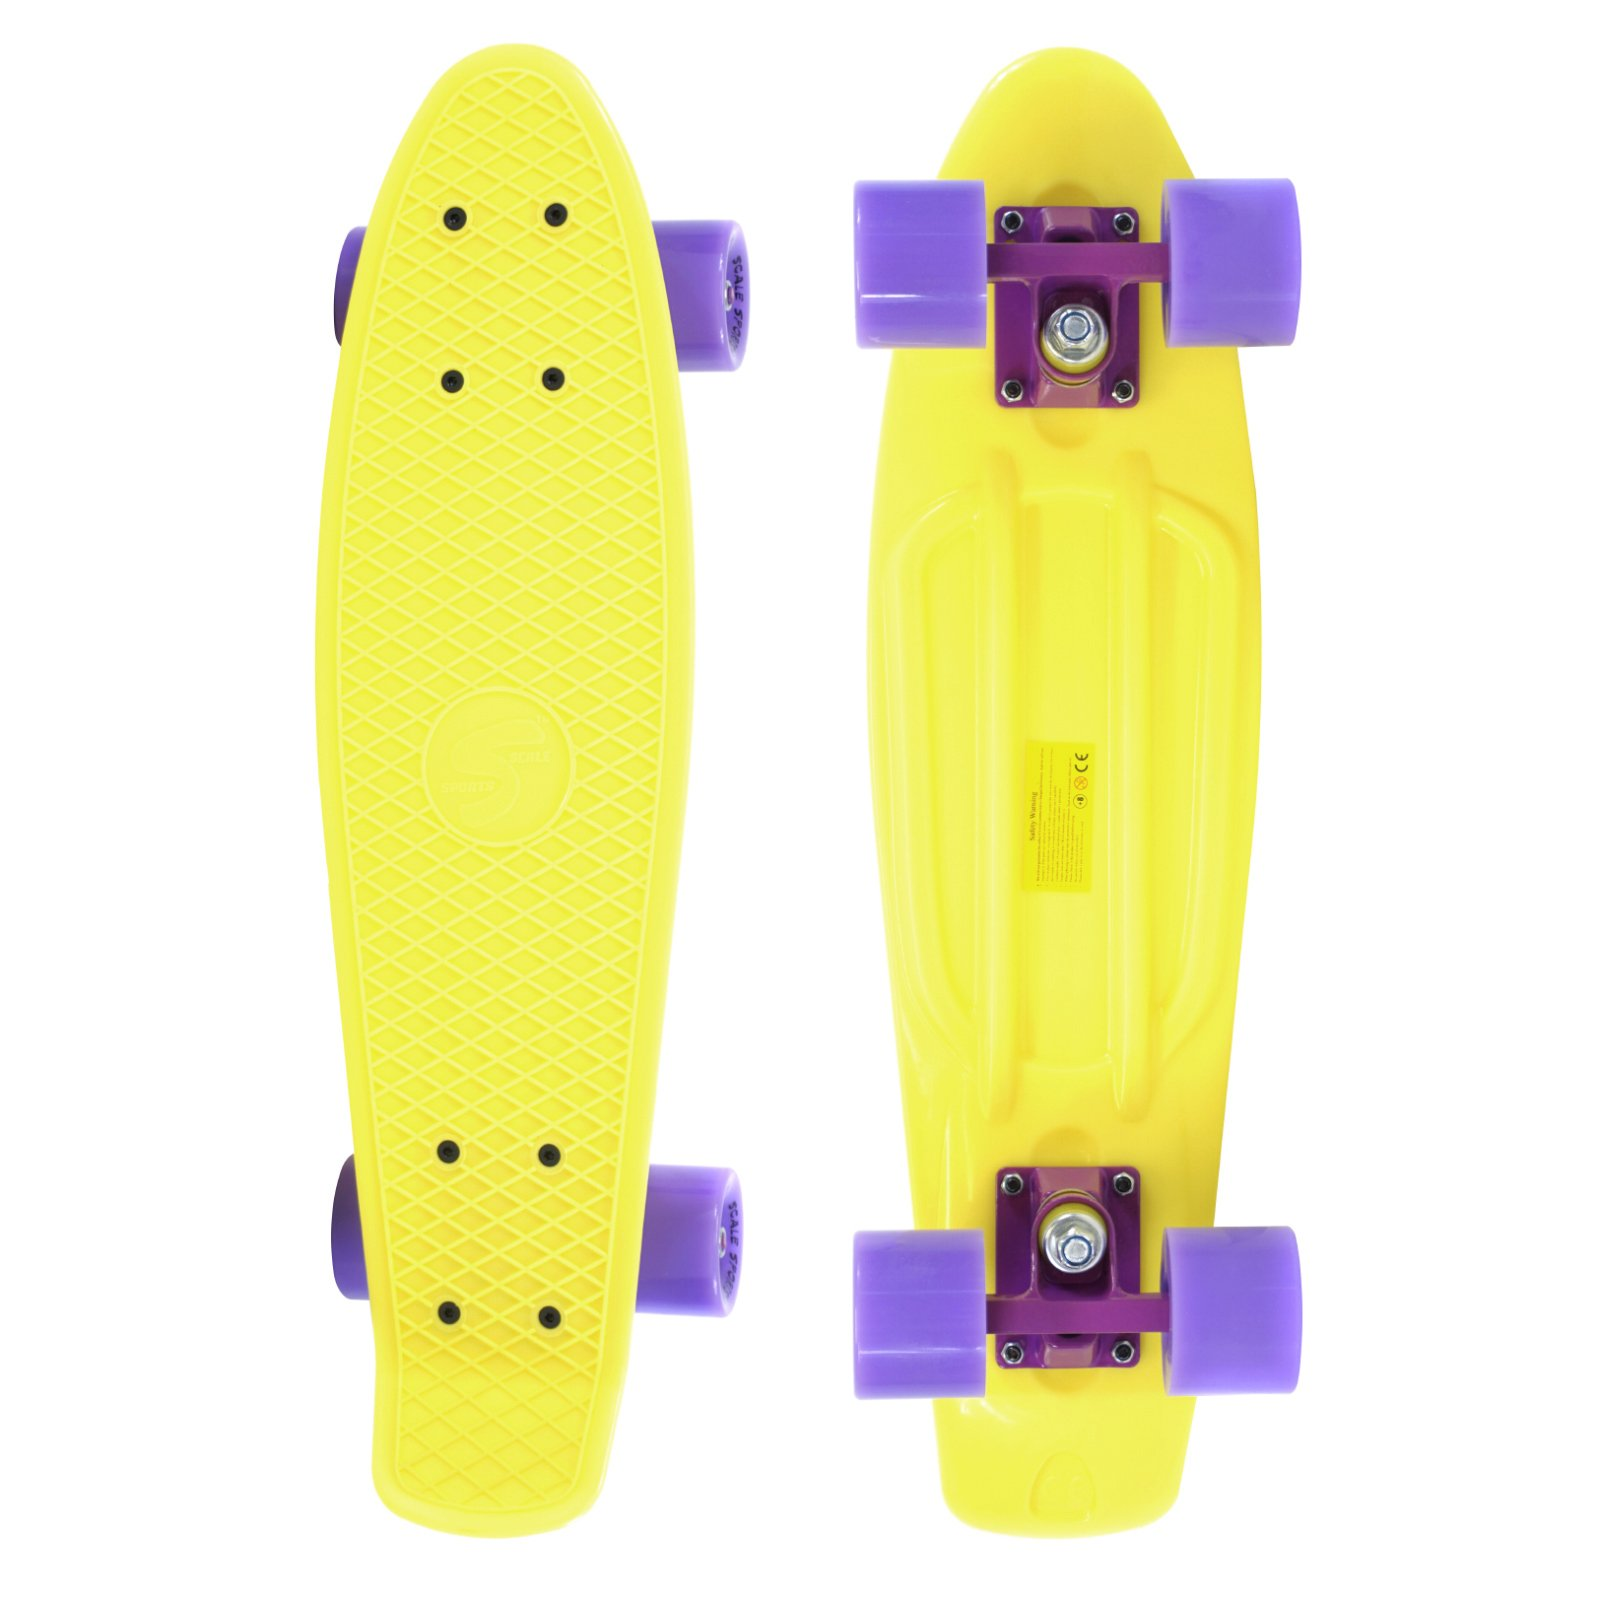 Scale Sports 22'' Skateboard Complete Pastel Street Retro Cruiser Classic Plastic Deck Yellow